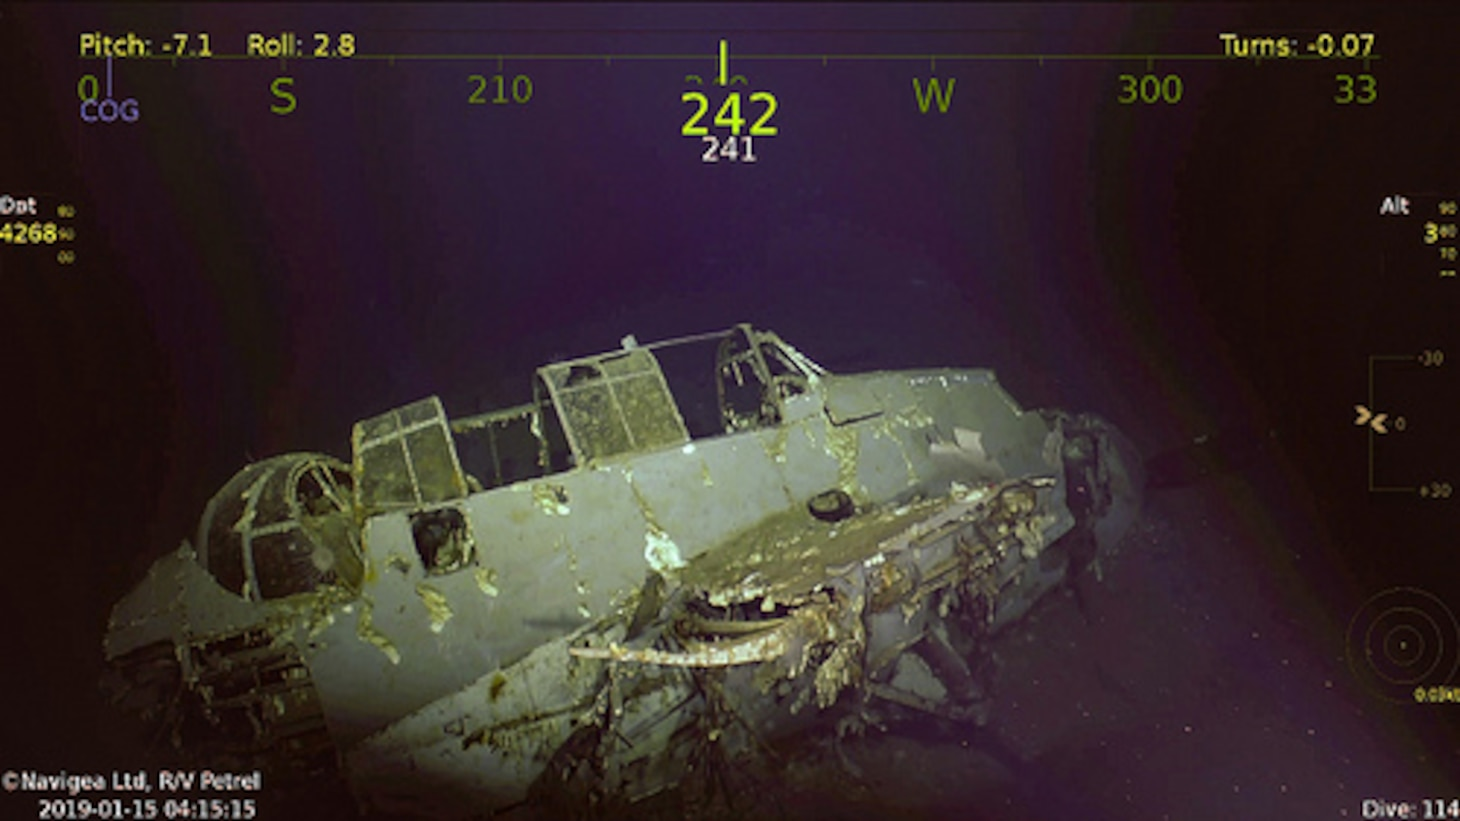 An Avenger aircraft that was previously aboard USS Wasp (CV 7), which was discovered on Jan. 14, 2019, by the expedition crew of Paul G. Allen's research vessel (R/V) Petrel.